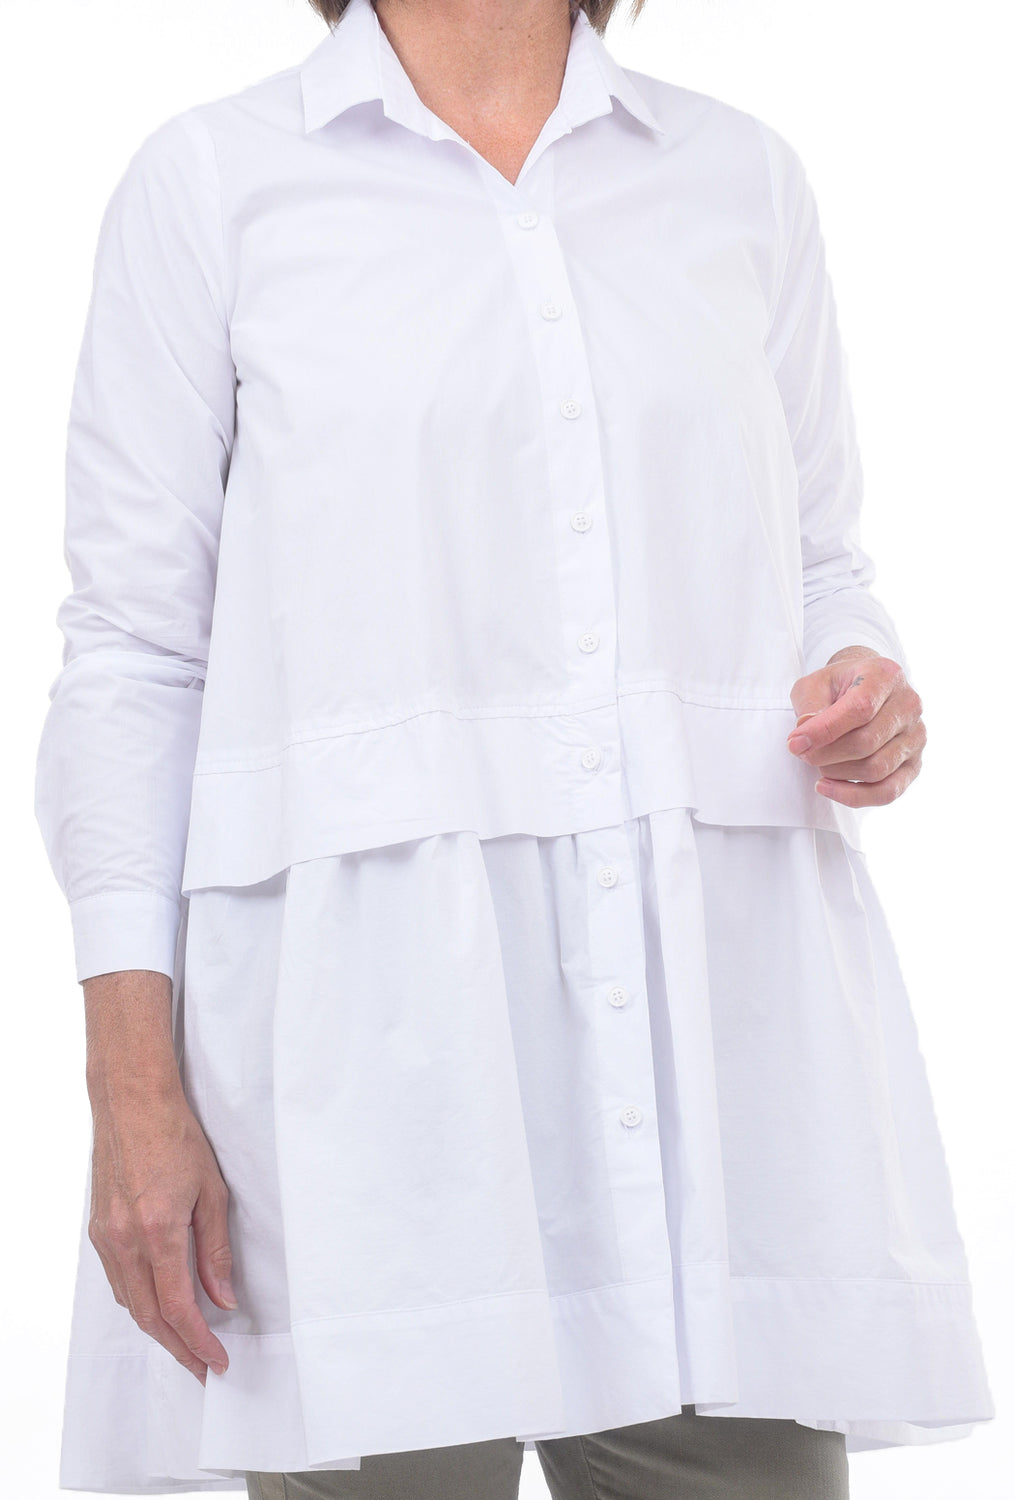 Alembika Bika Crisp Layered Shirt, White